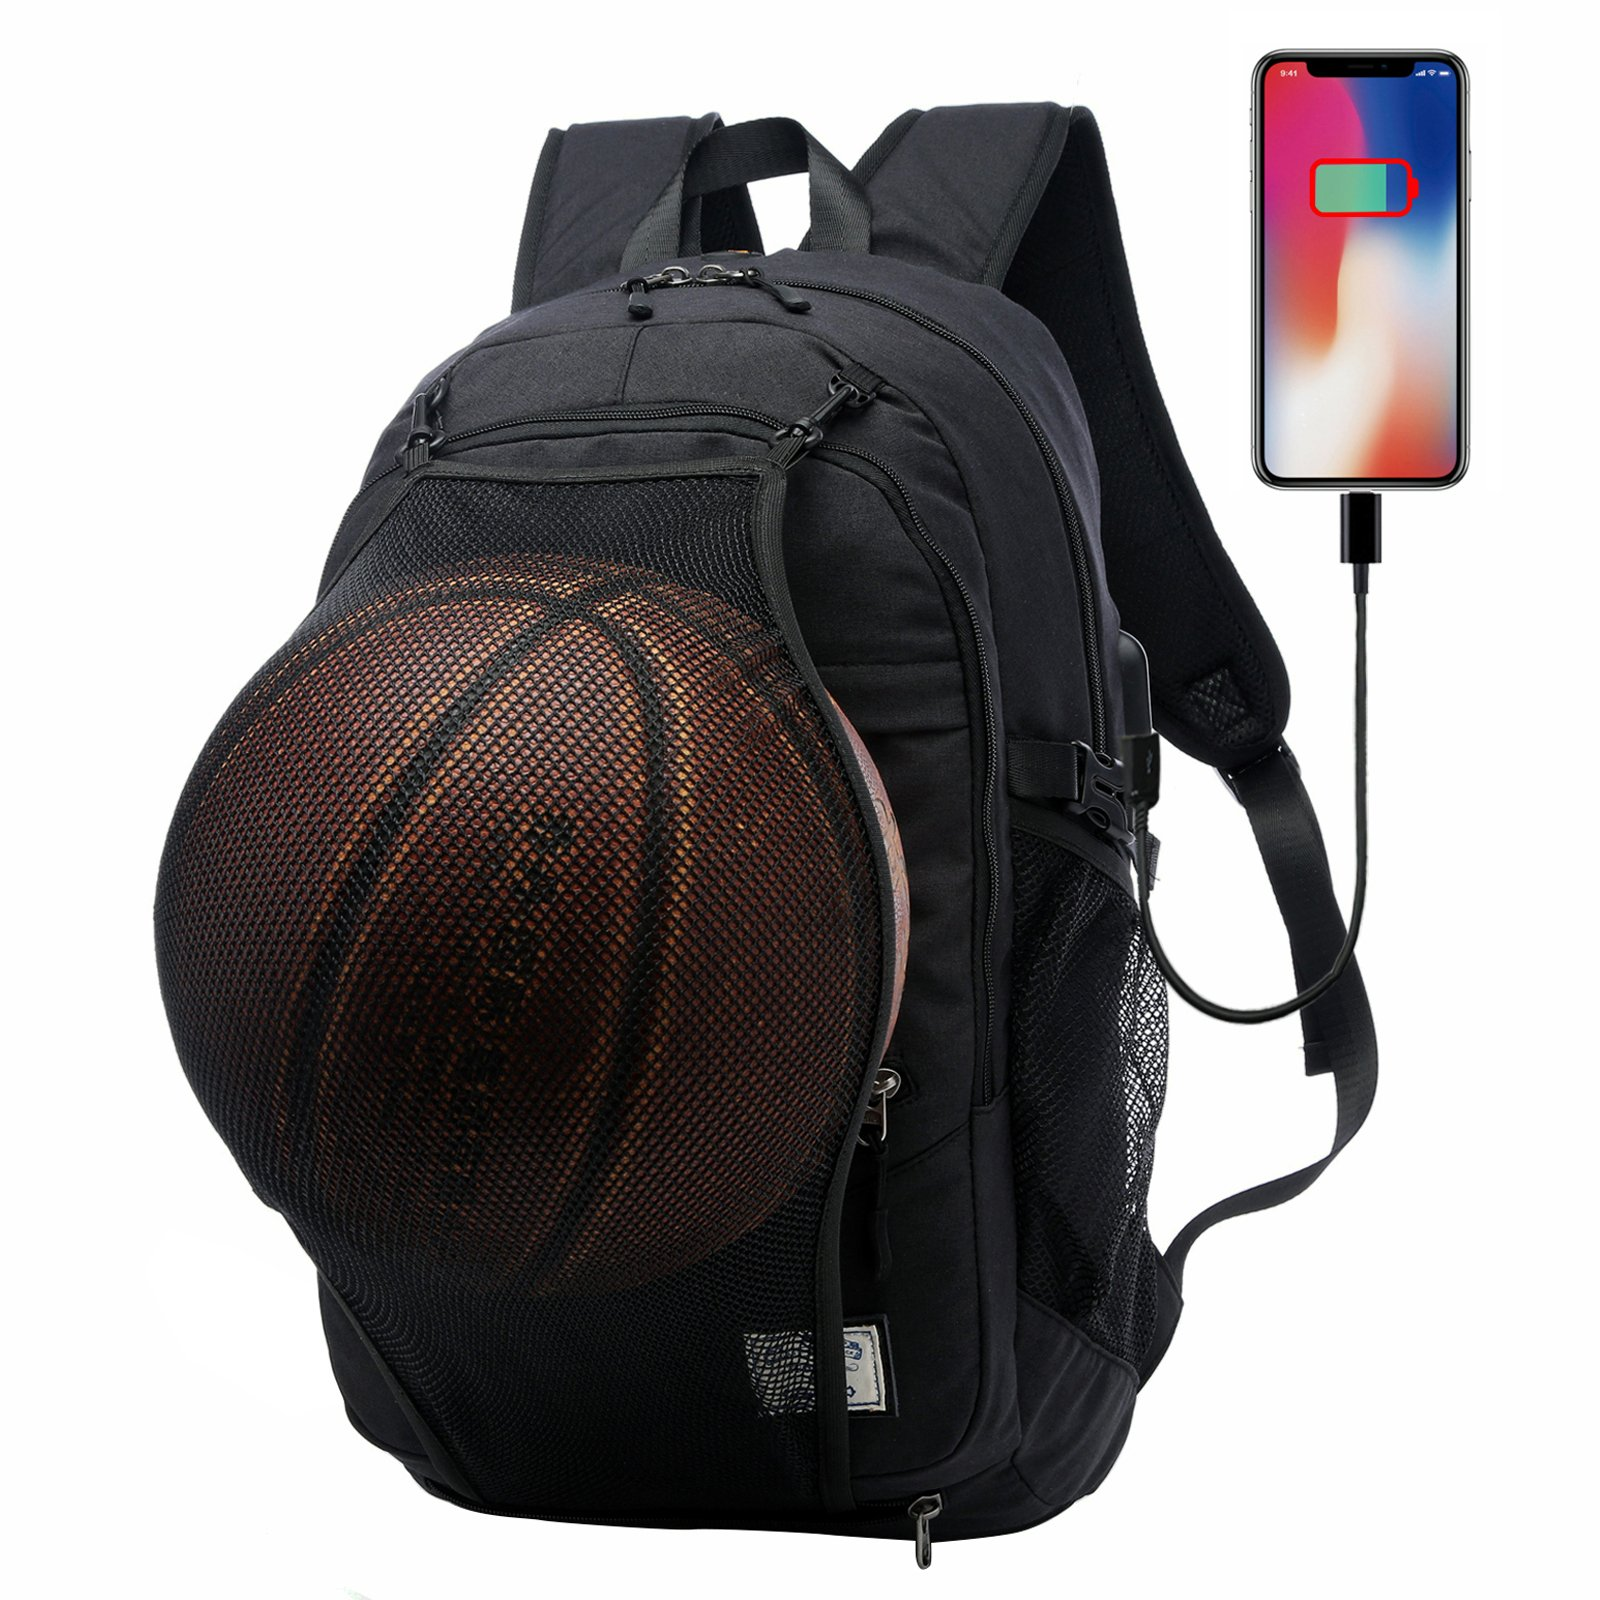 GOHIGH Basketball Backpack, Soccer Backpack, Football Backpack, Computer Backpack Business Laptop Backpack with USB Port, Headphone Pouch and Ball Holder with Basketball Net for Women/Men - Black